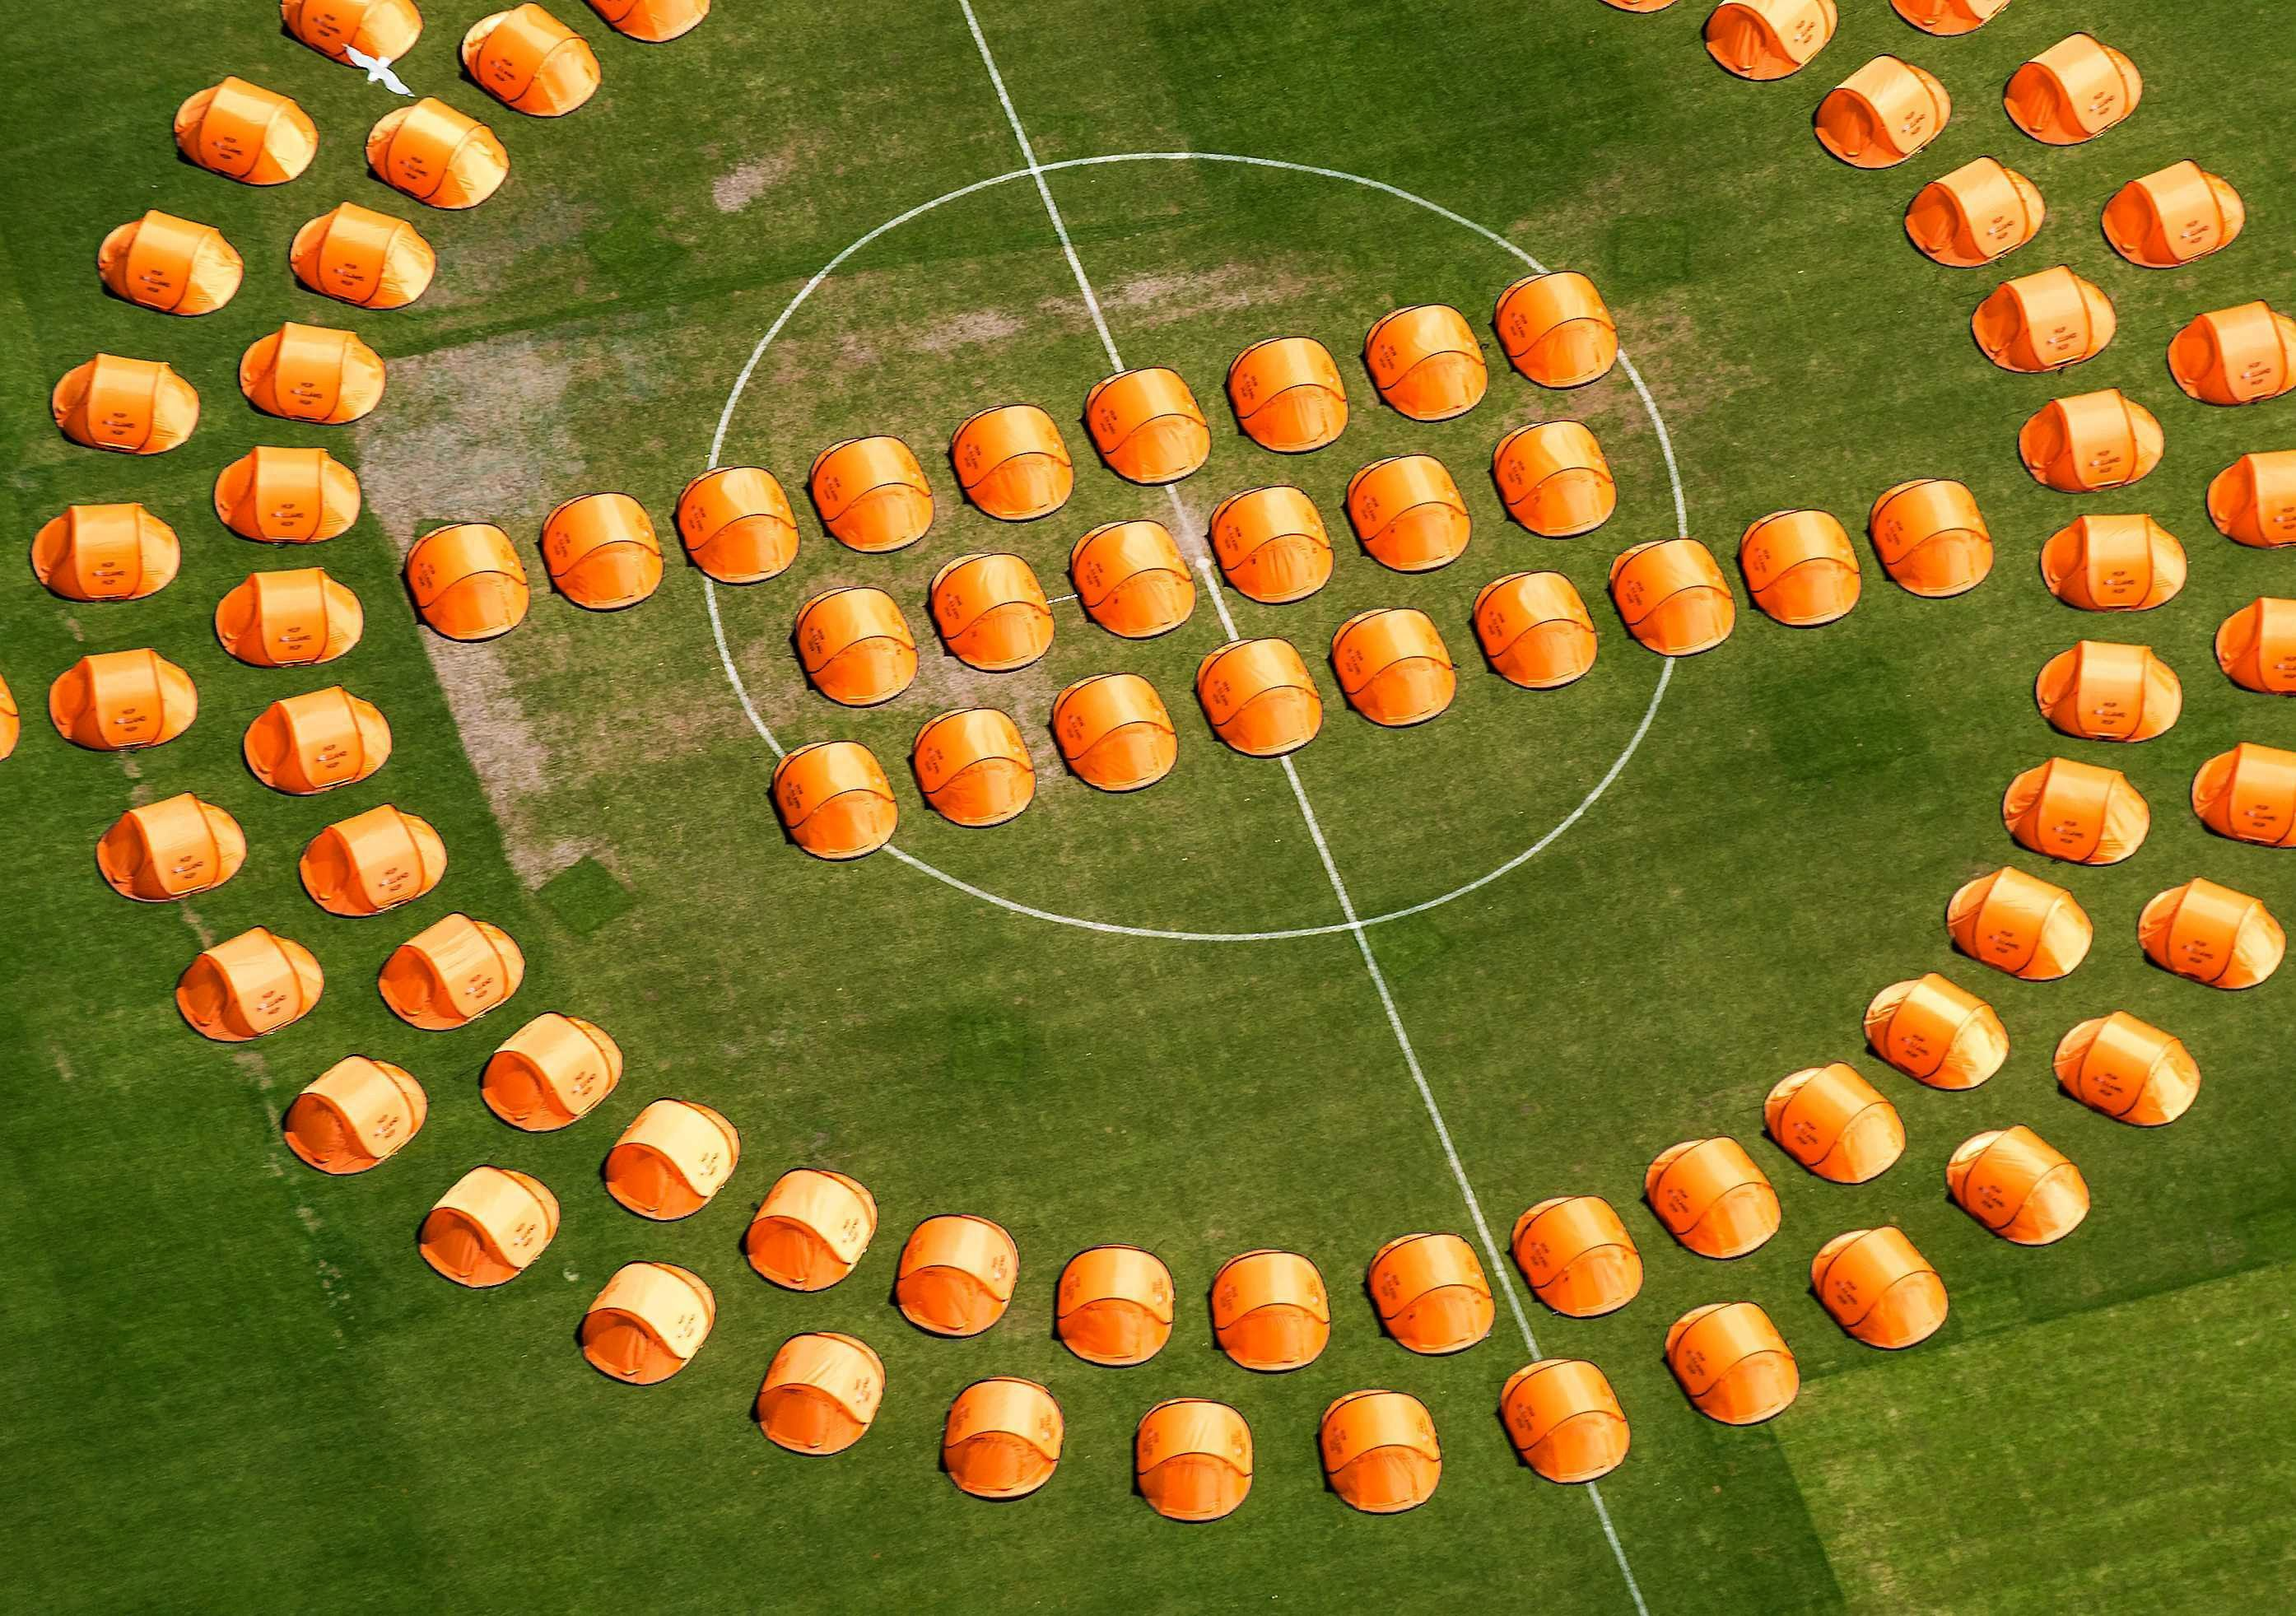 An aerial view of orange tents for Dutch soccer fans on the pitch at the Feyenoord Stadium in Rotterdam, Netherlands on June 13, 2014.